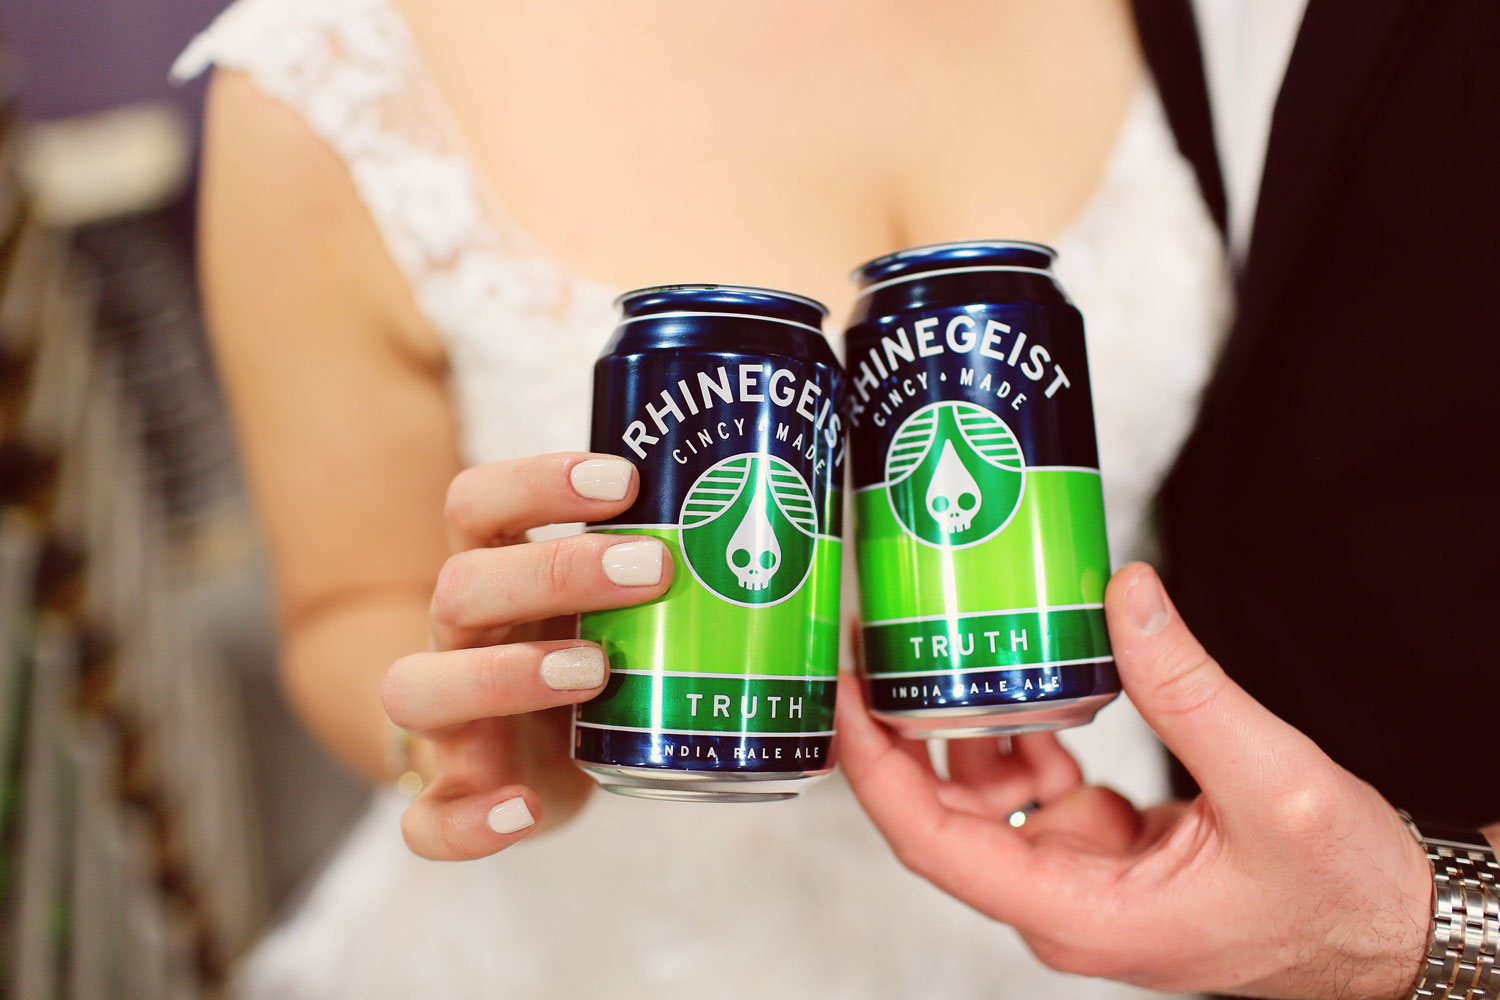 Bride and groom toast cans of beer at brewery wedding venue